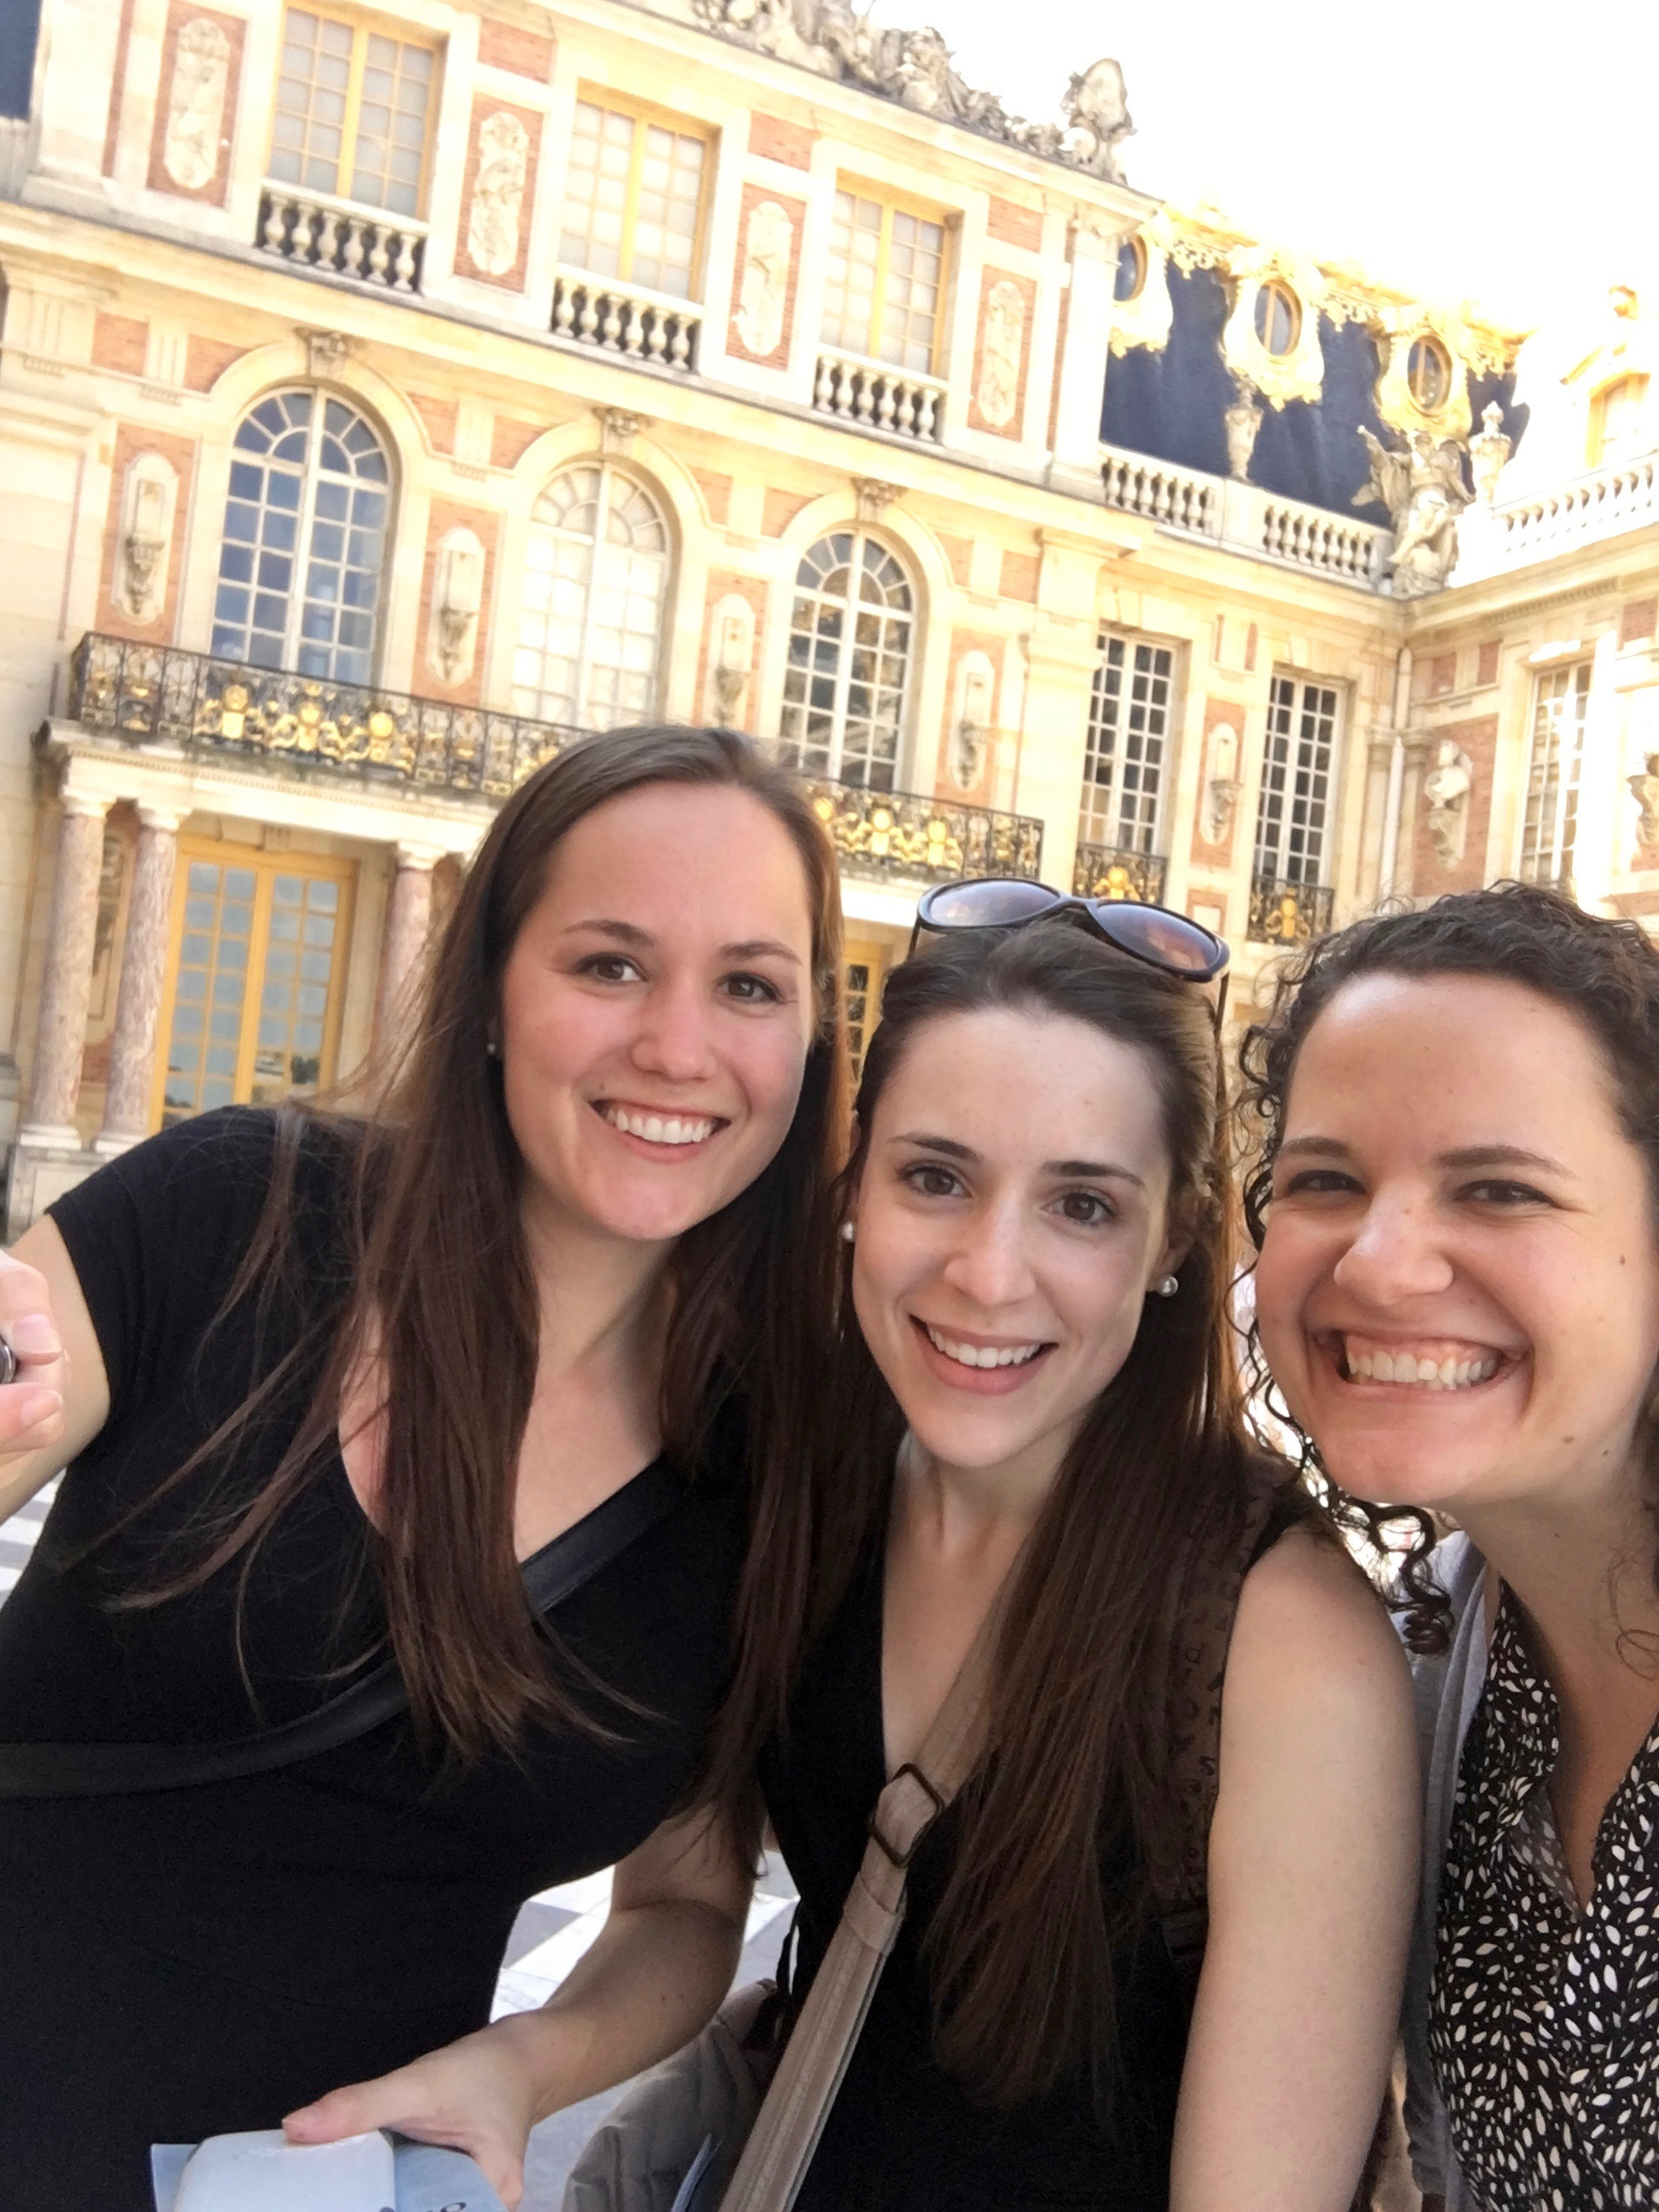 Selfie at the chateau